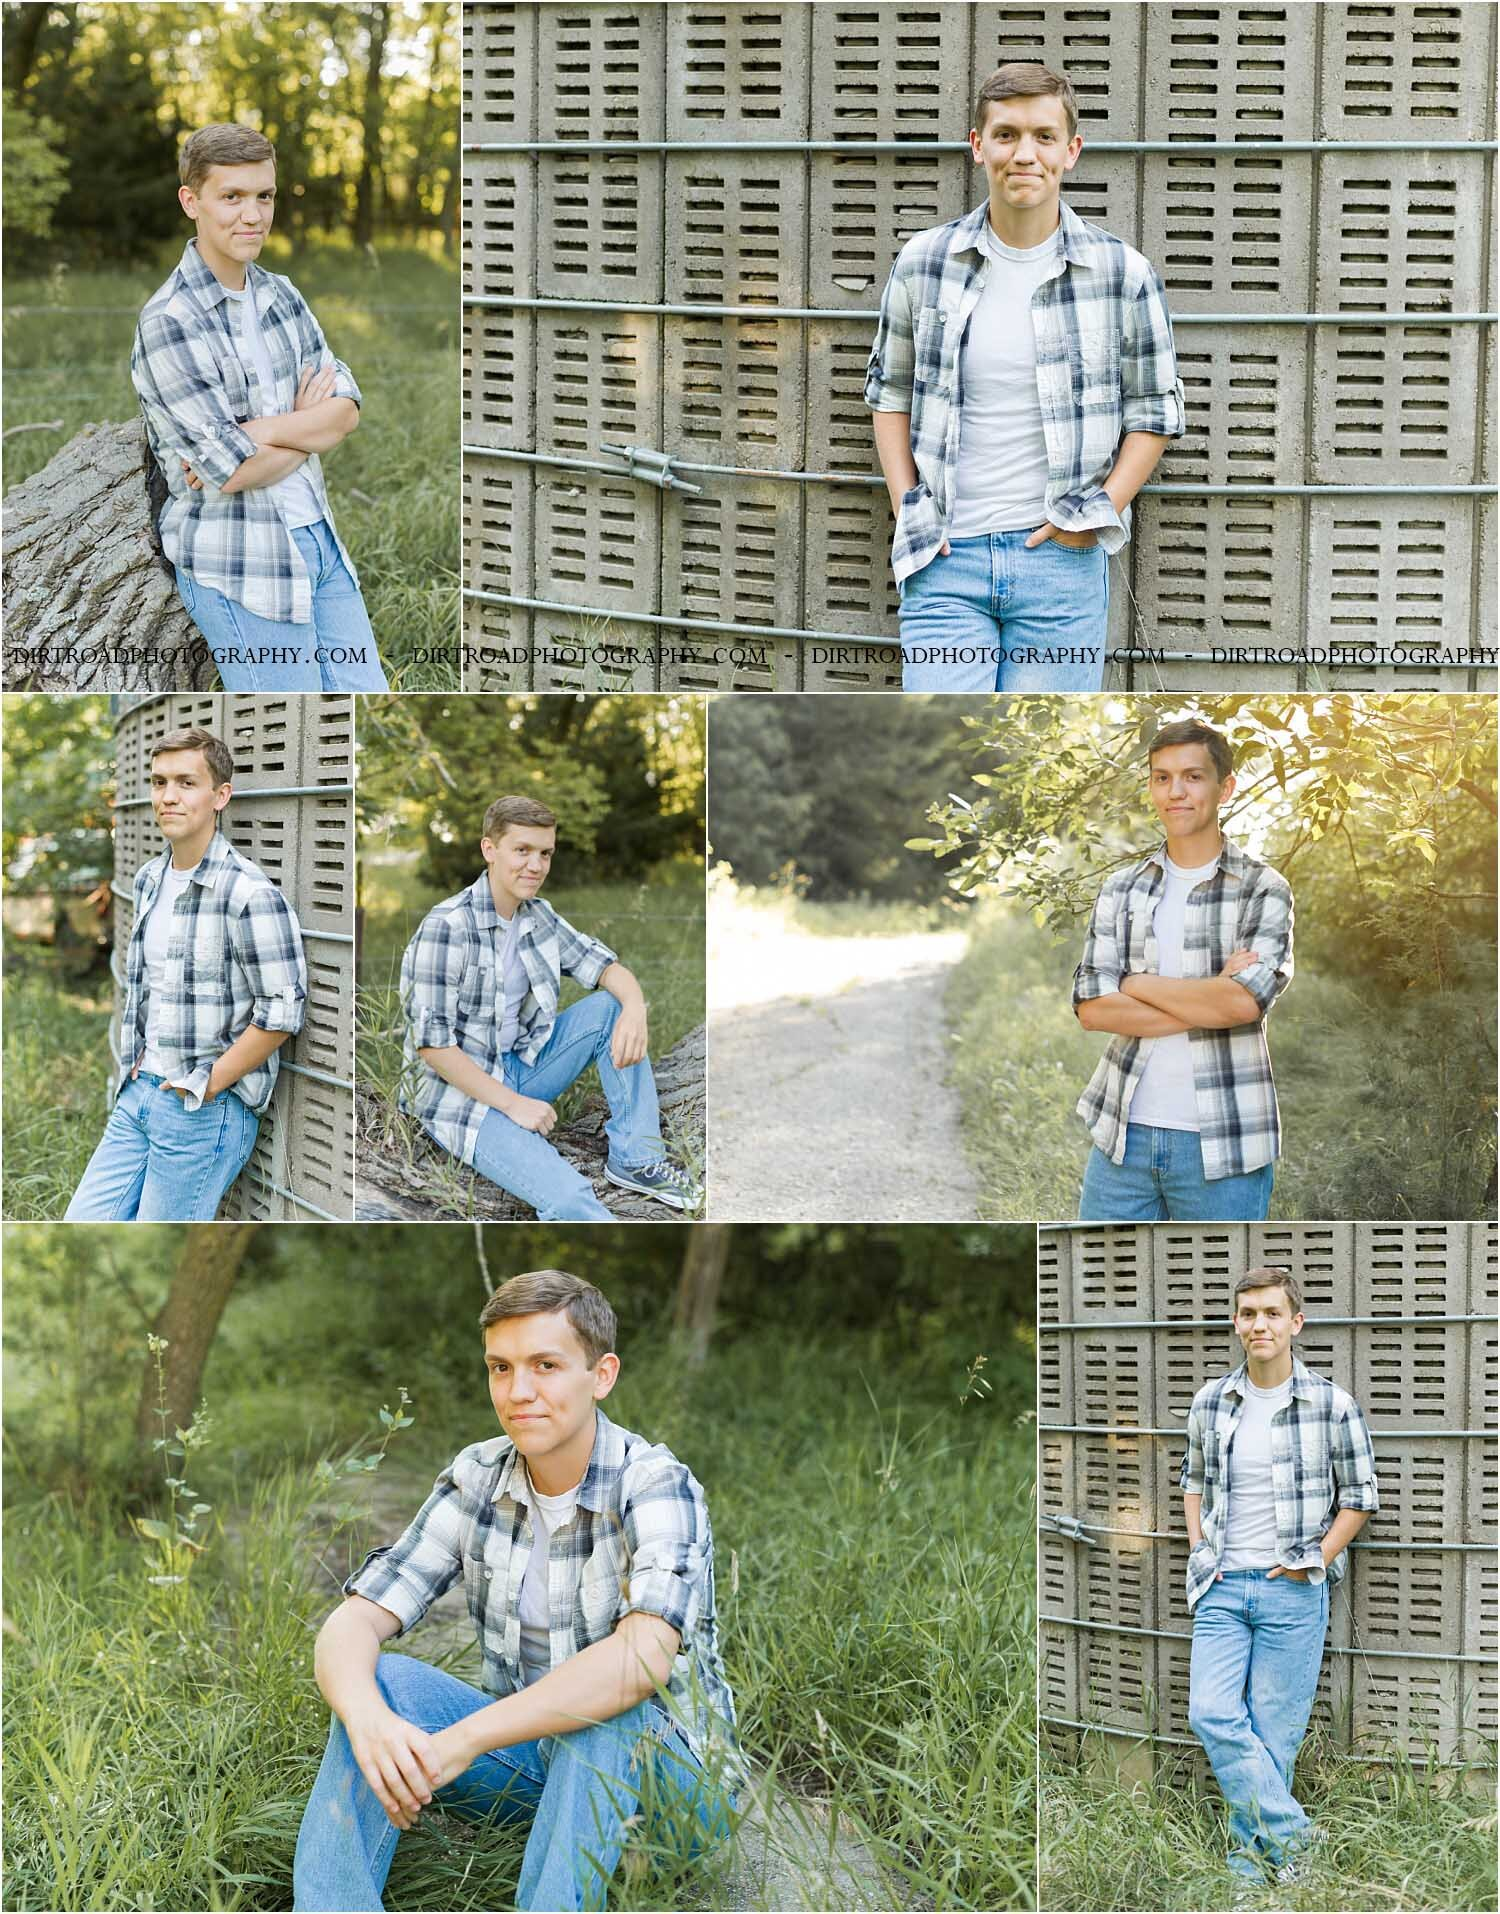 images of high school senior guy named damian of wilber, nebraska. he went to wilber-clatonia high school and is part of the class of 2020. photos include trees, tall grass, and farm scenery at sunset with a boy wearing plaid shirt and jeans as well as graphic tshirts. photographer is kelsey homolka nerud of wilber nebraska who specializes in high school senior photography and senior pictures.